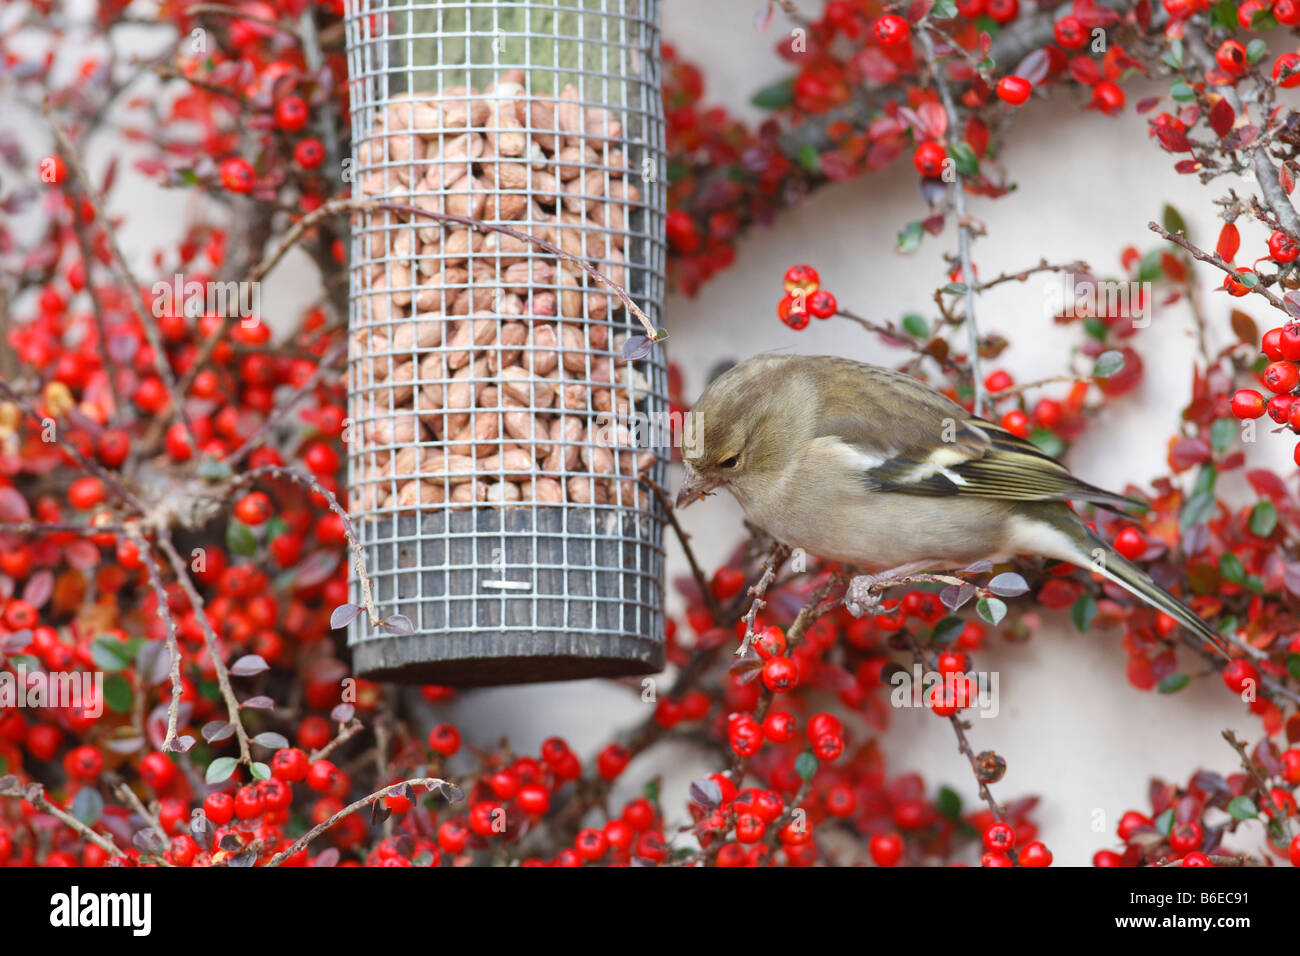 CHAFFINCH Fringilla coelebs FEMALE AT NUT FEEDER - Stock Image